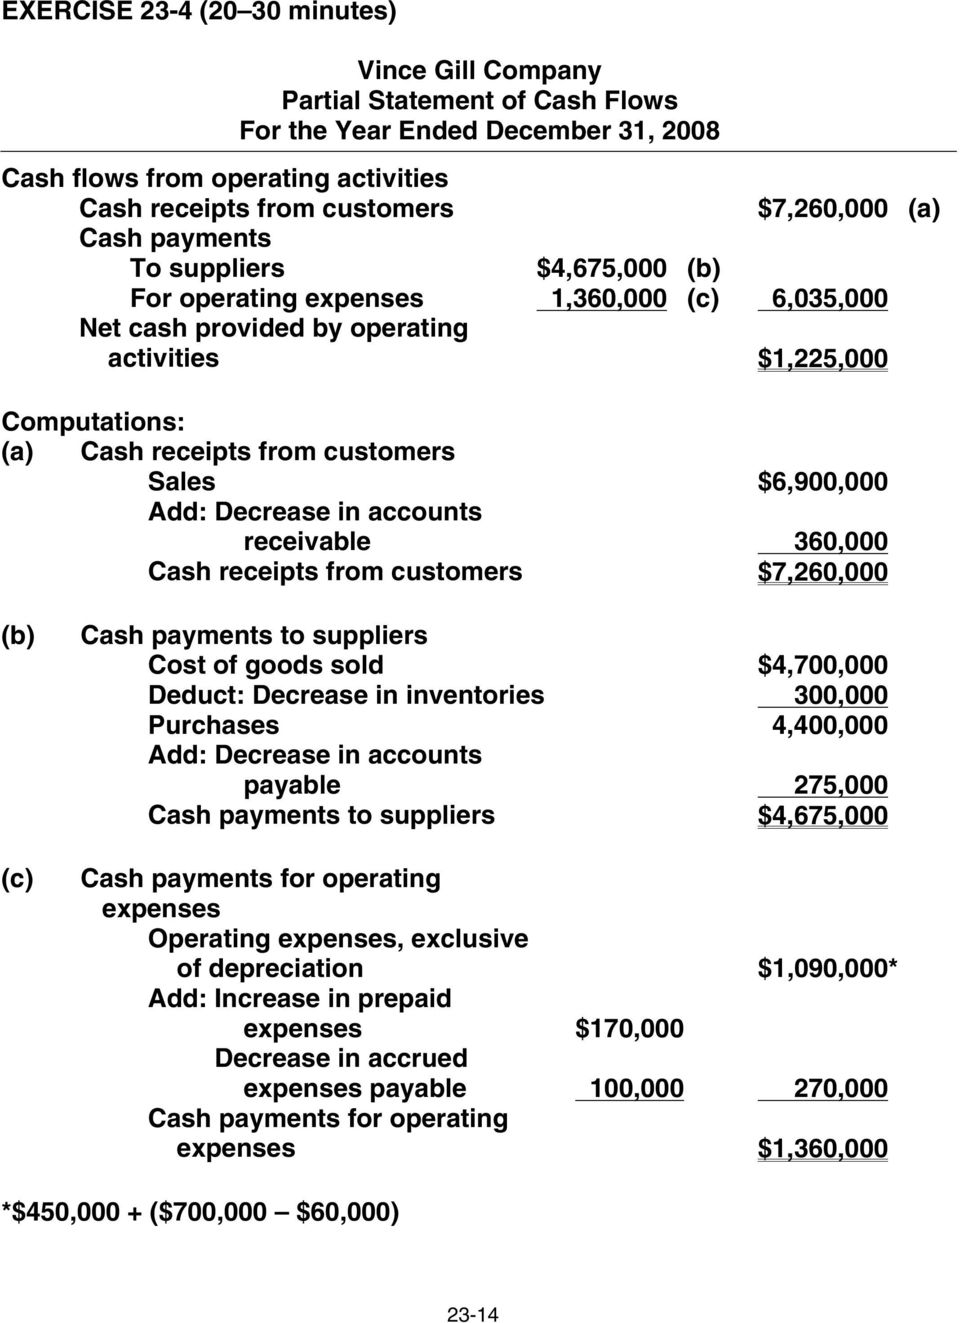 $6,900,000 Add: Decrease in accounts Add: receivable 360,000 Cash receipts from customers $7,260,000 (b) (c) Cash payments to suppliers Cost of goods sold $4,700,000 Deduct: Decrease in inventories